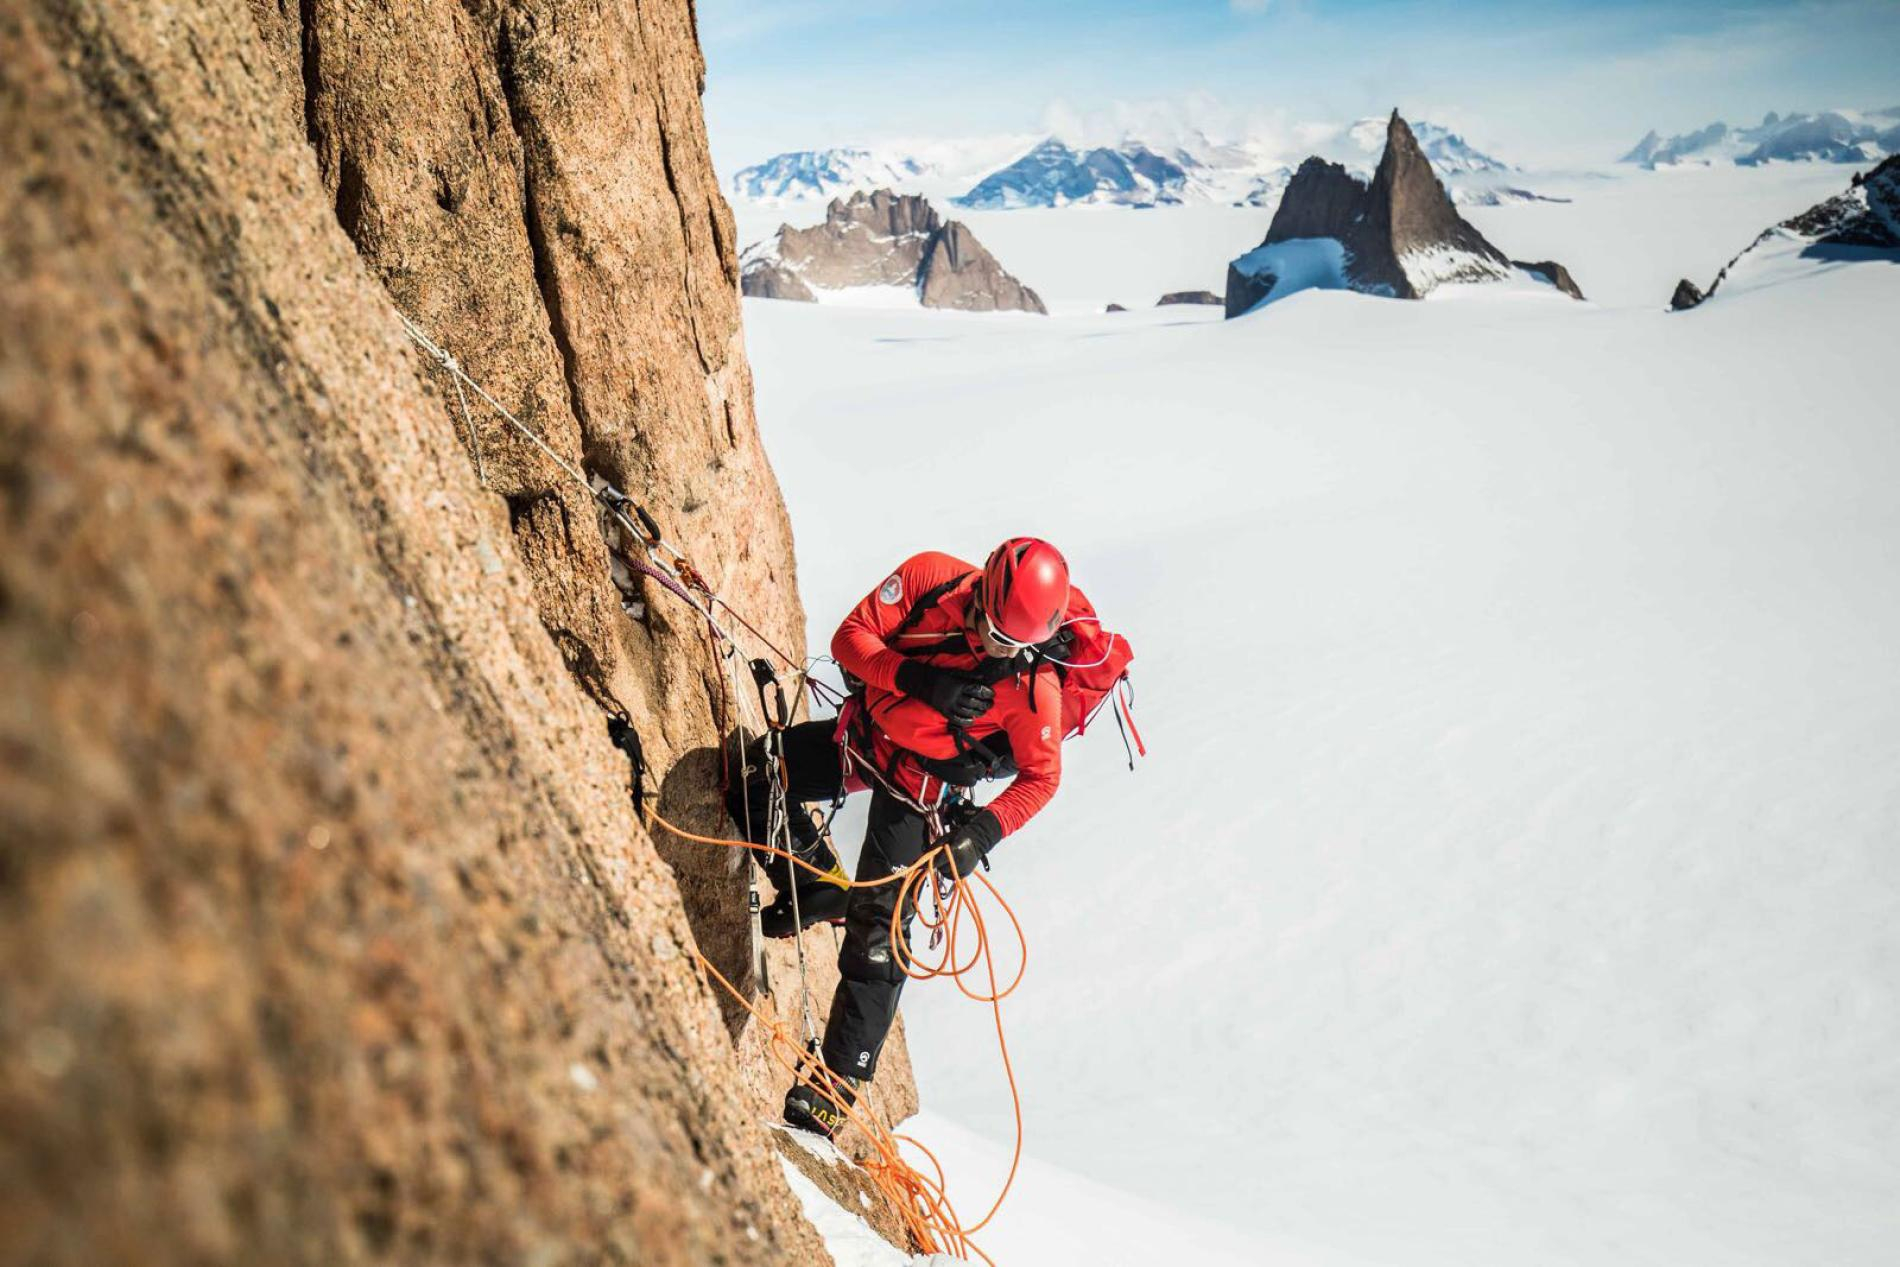 mountain climbing expeditions challenged - HD1900×1267